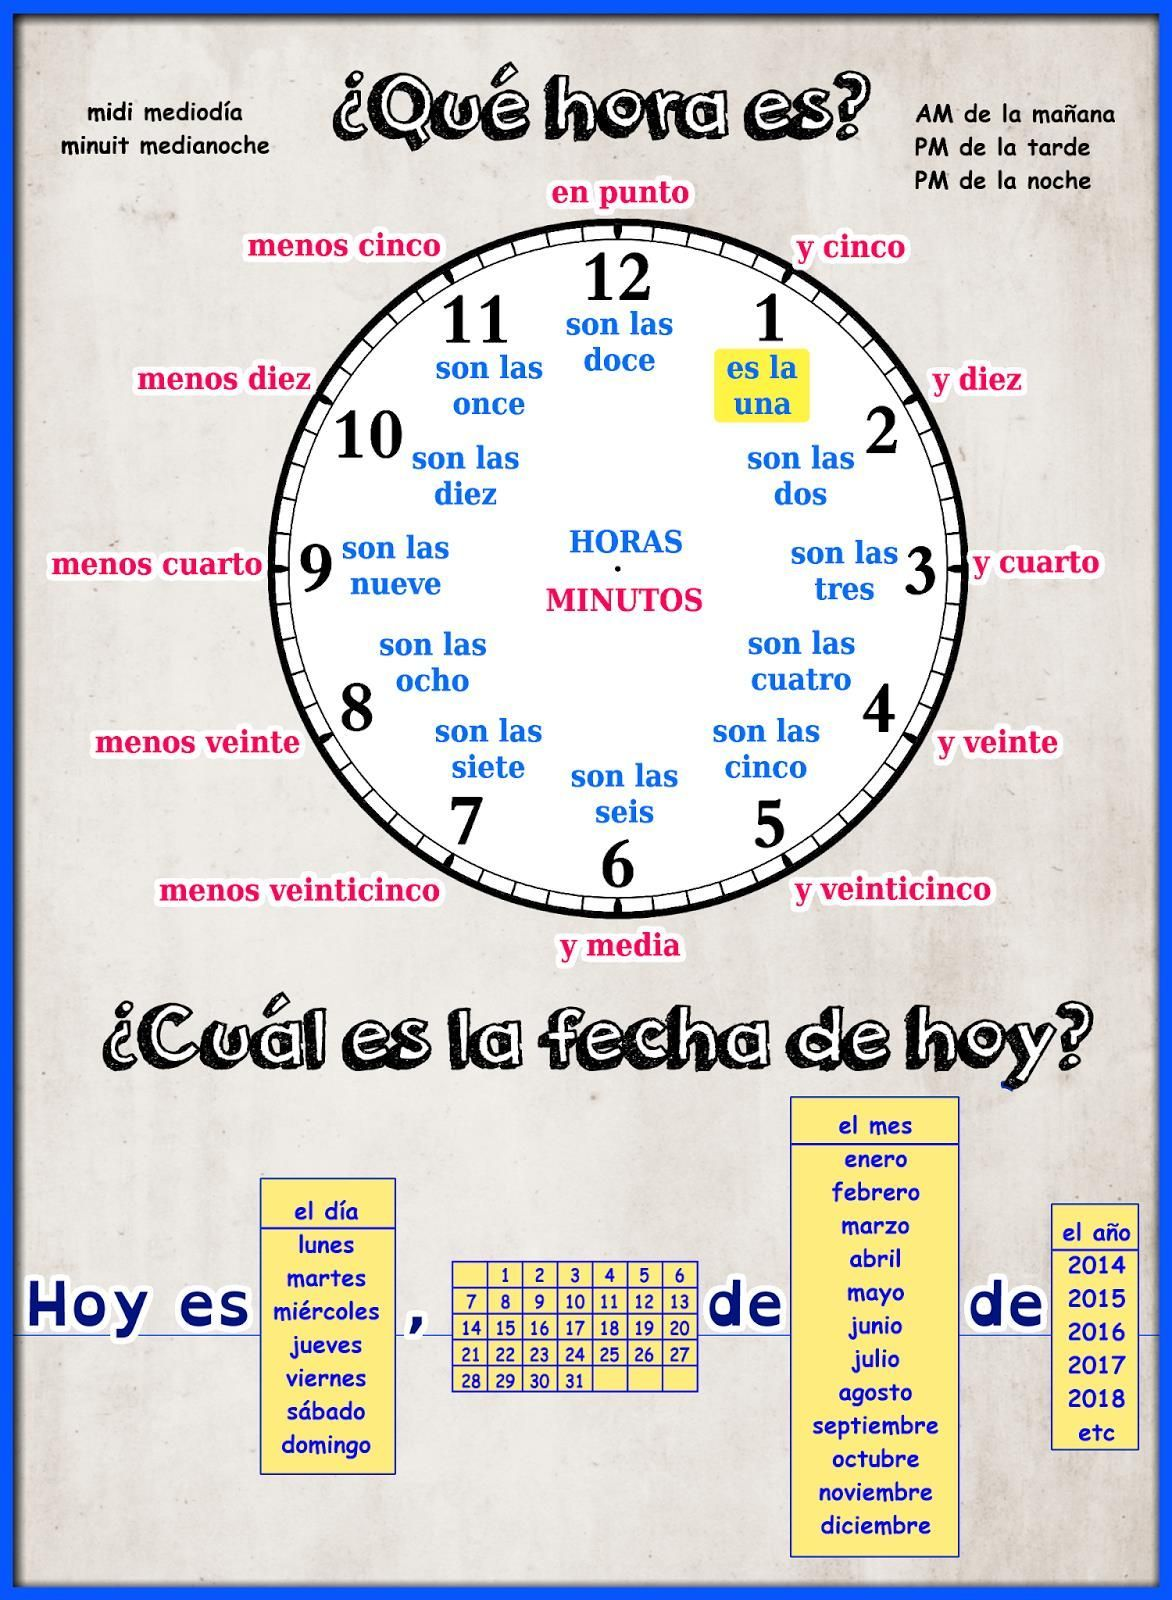 La Hora Y Fecha Spanishinfographic